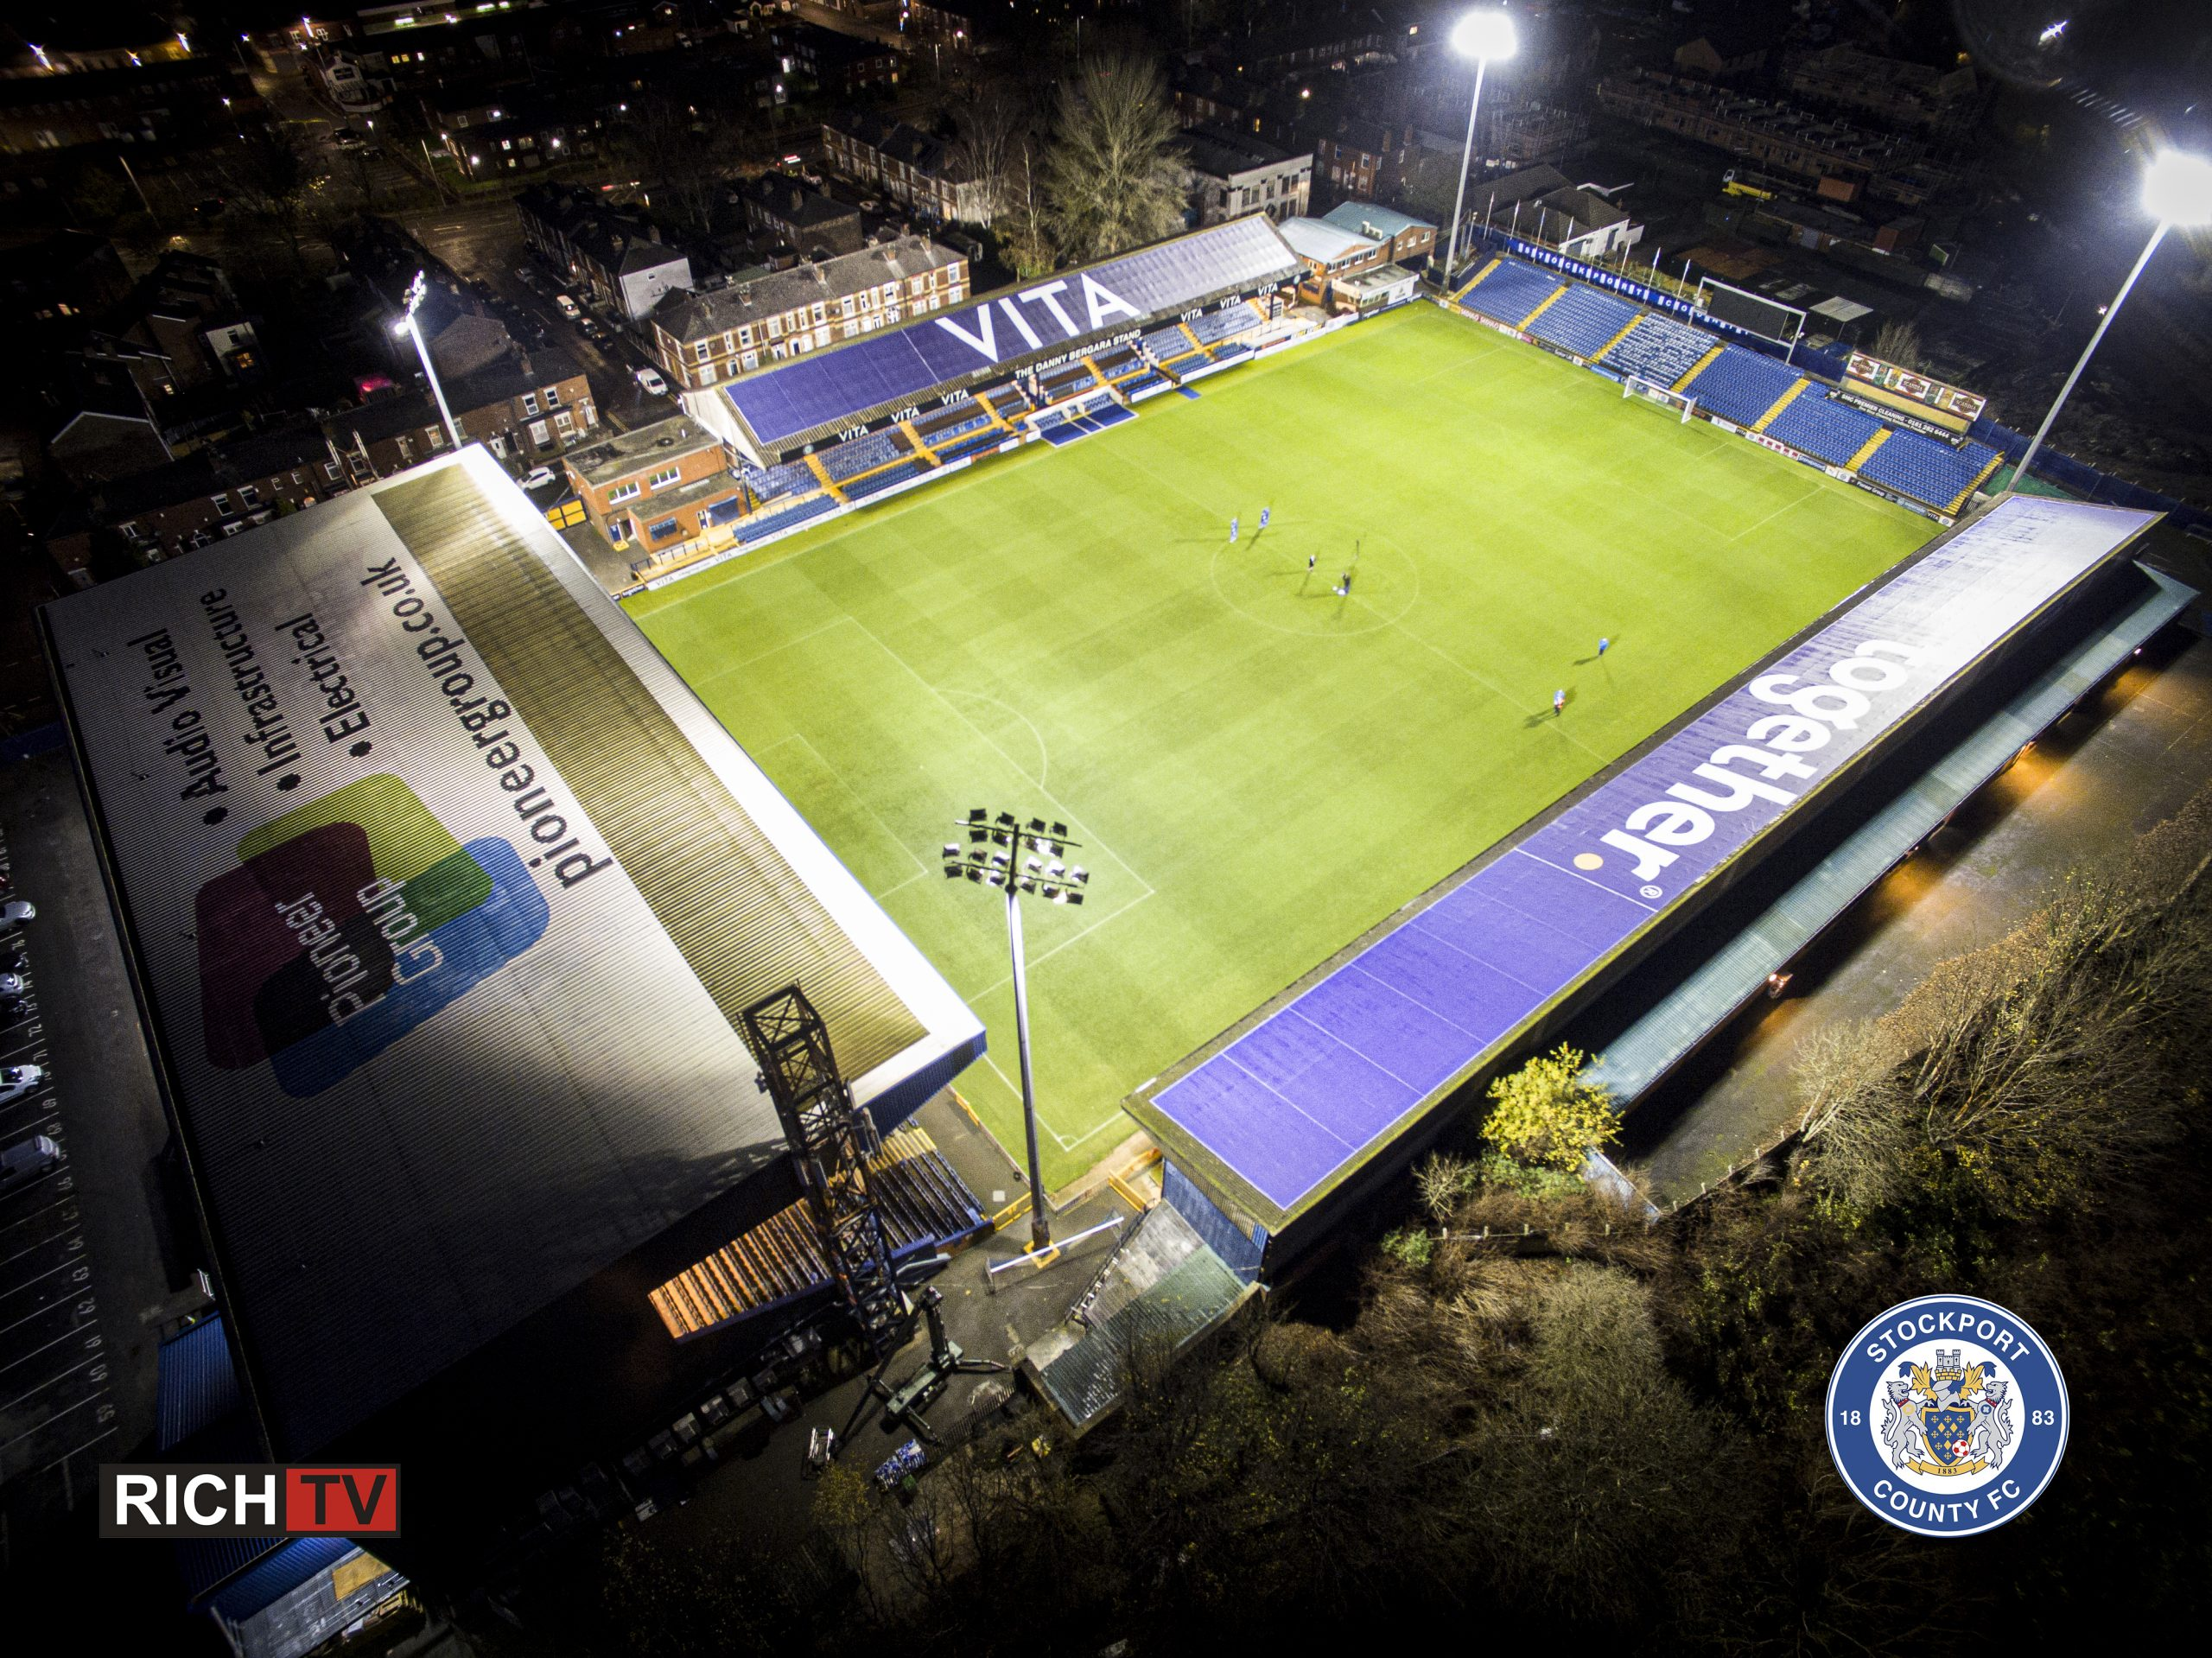 Logos on Stockport County night shot